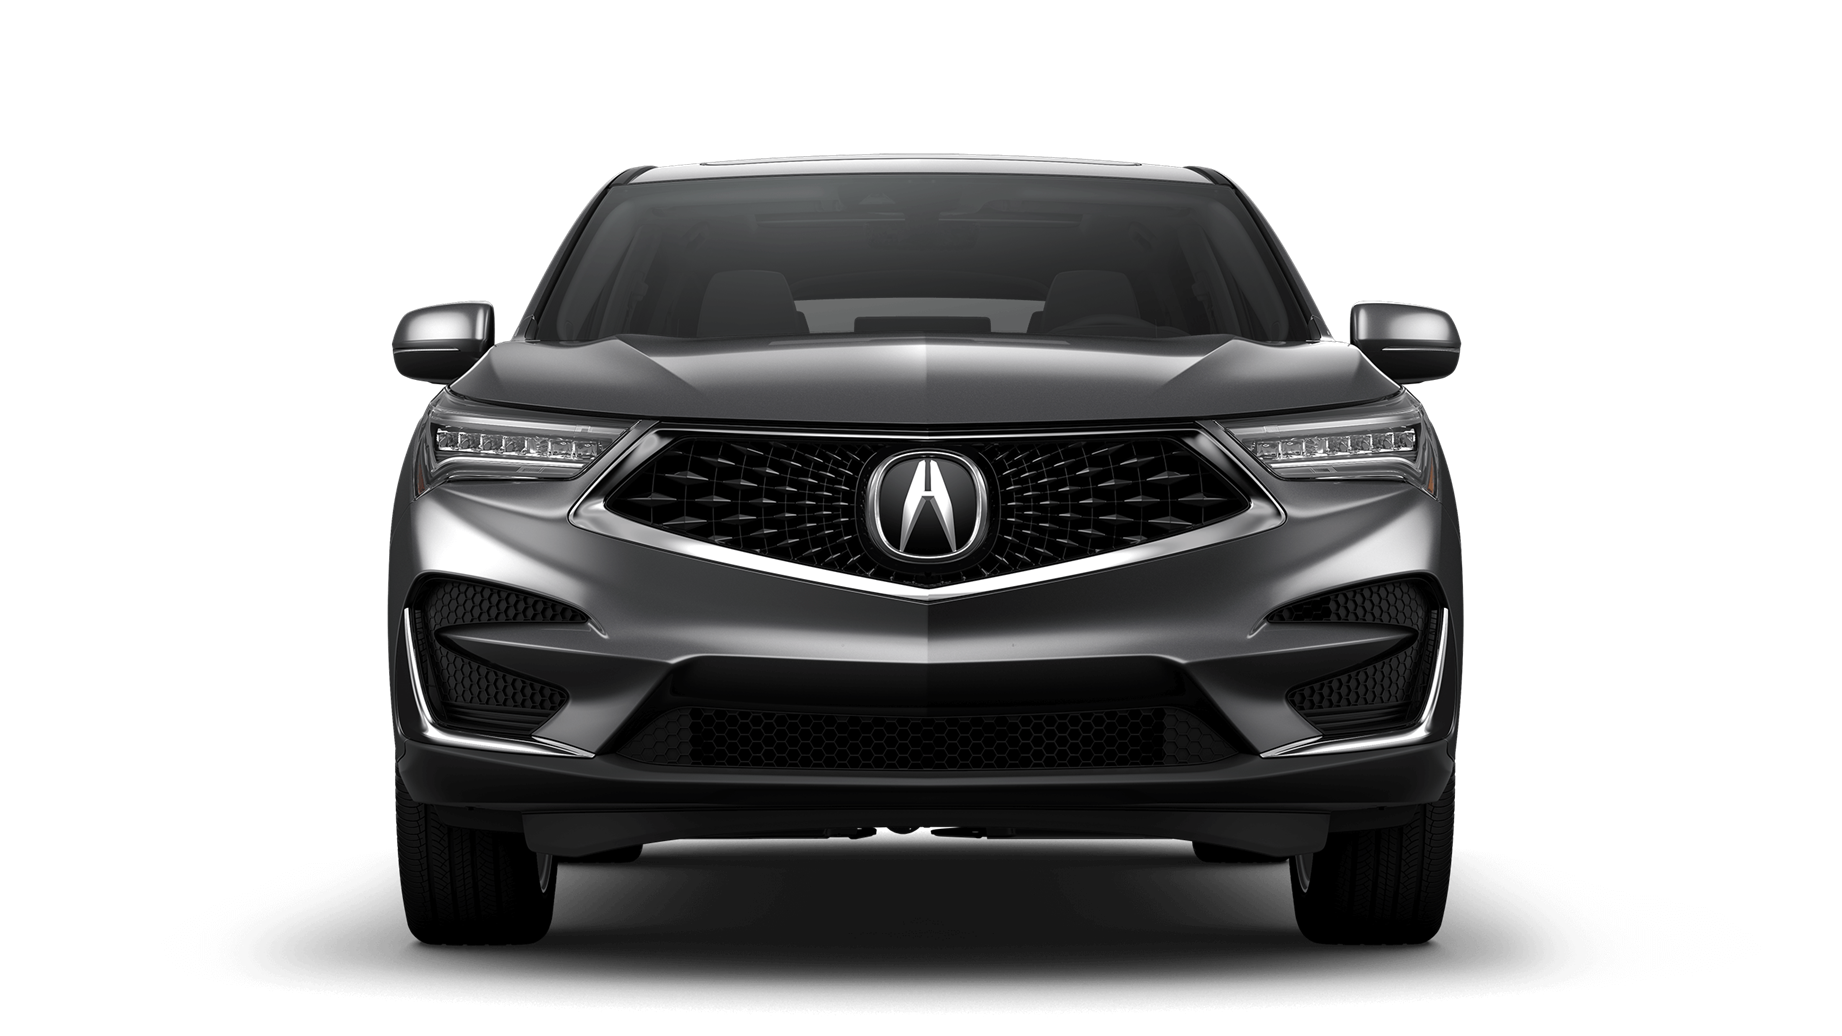 83 The Best Acura 2019 Dimensions Release Date And Specs Exterior with Best Acura 2019 Dimensions Release Date And Specs